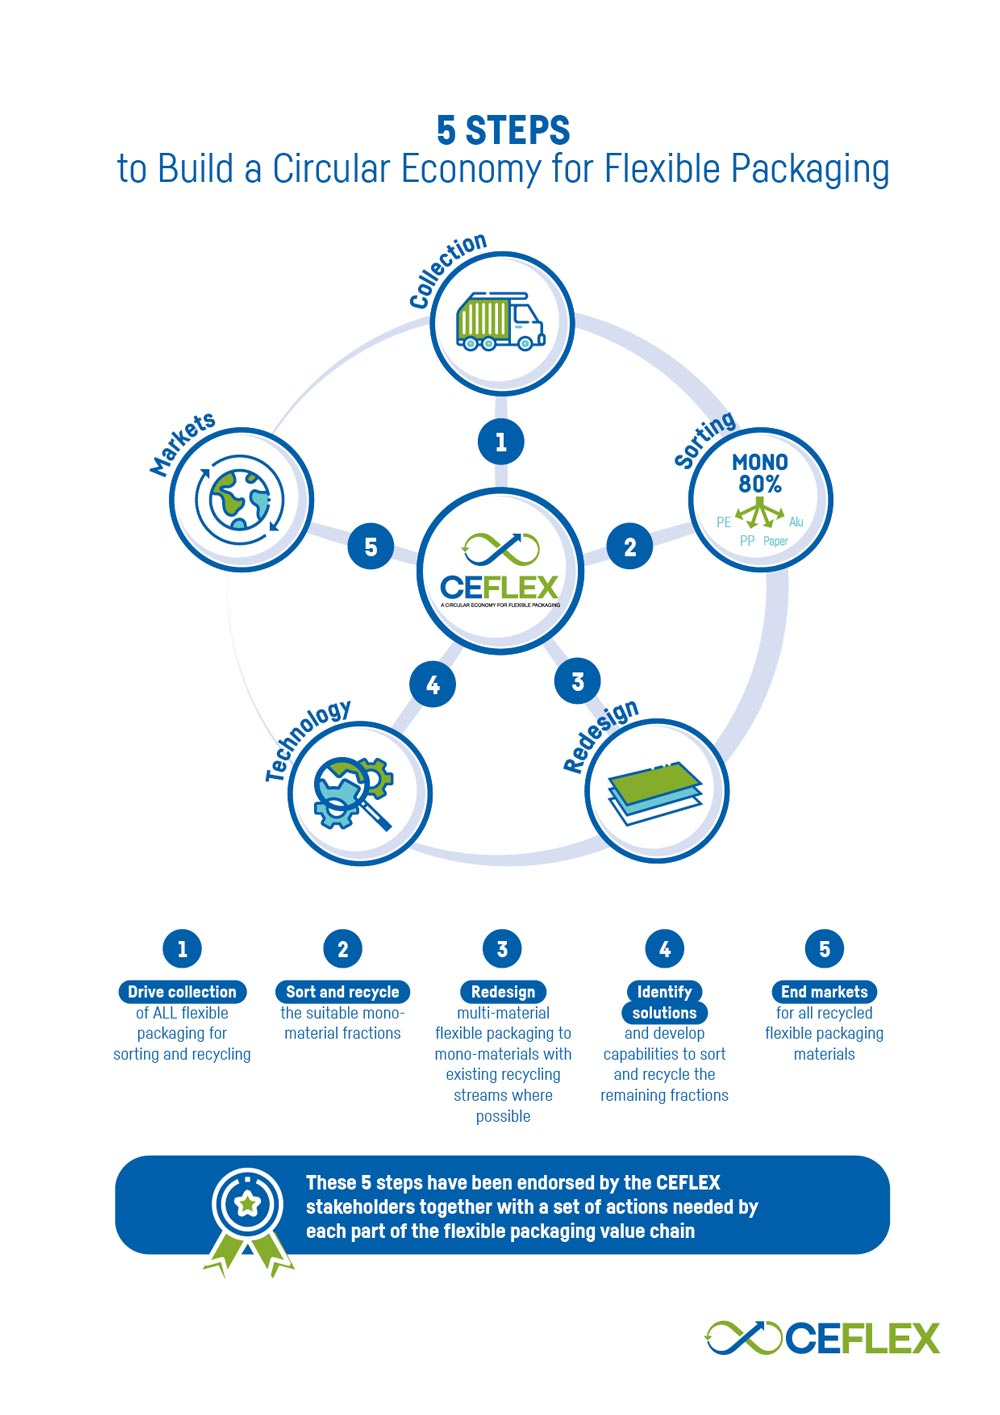 diagram representing the 5 steps to build a circular economy for flexible packaging